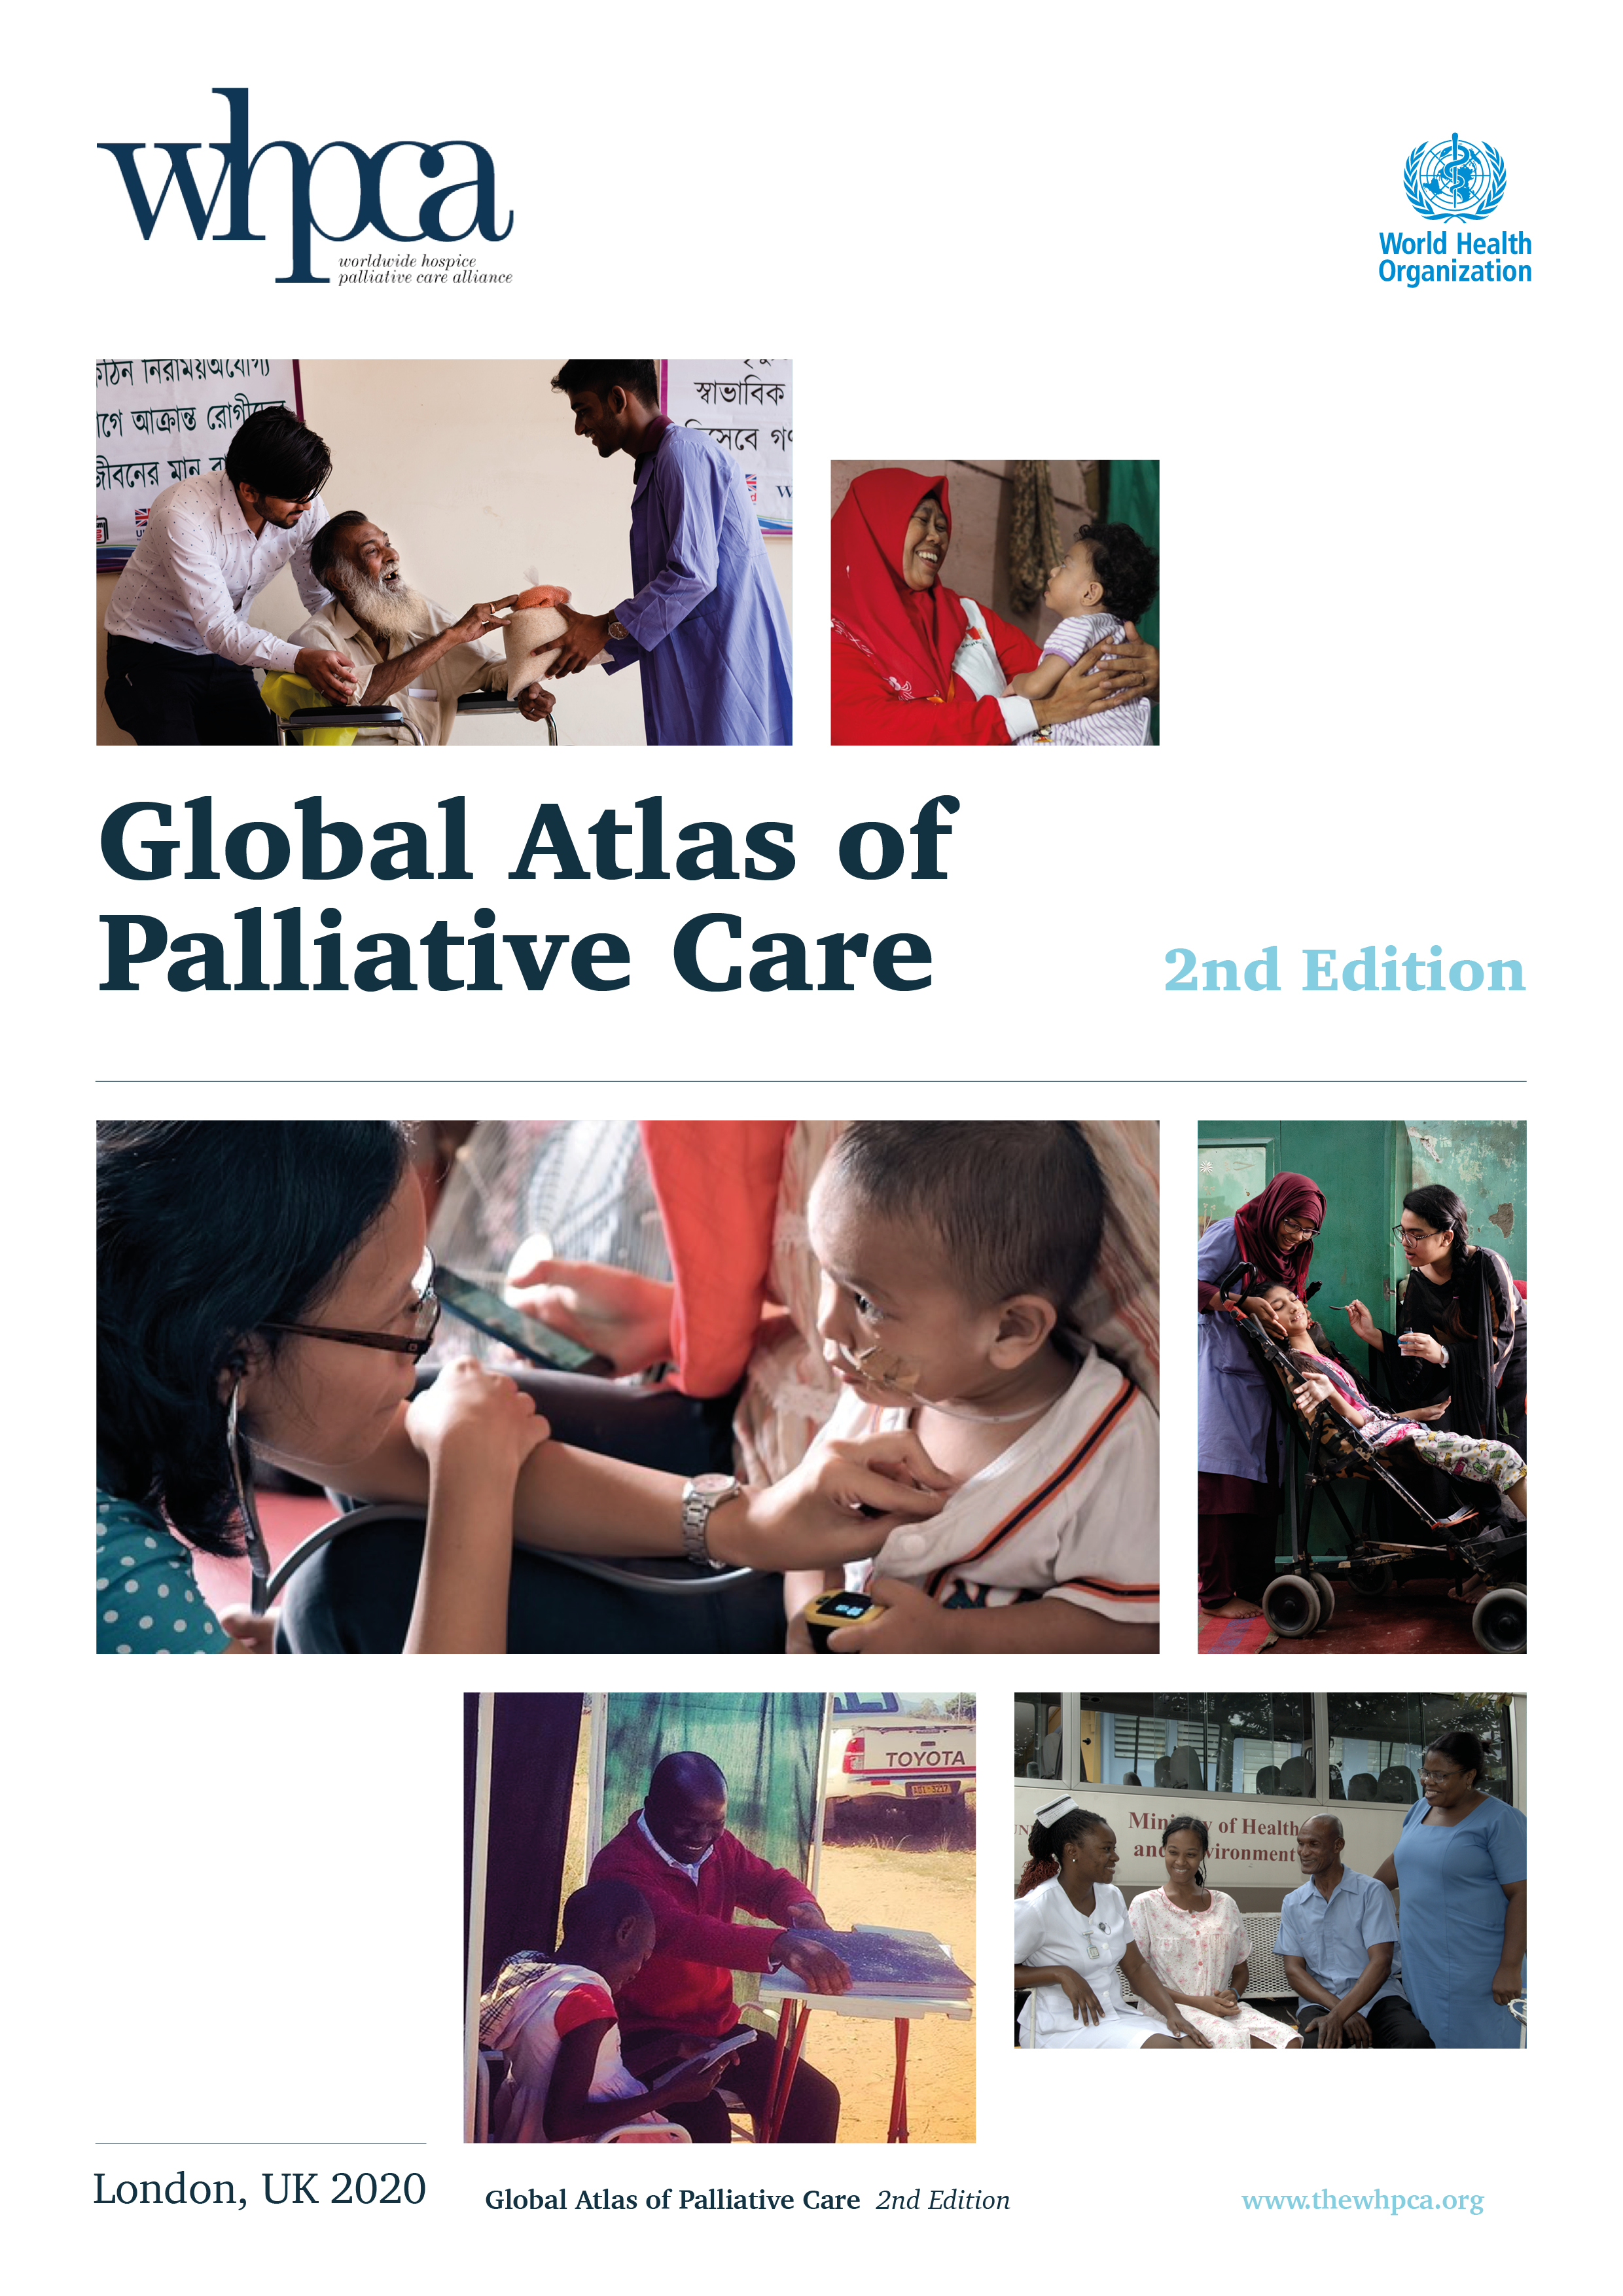 Launch of Global Atlas of Palliative Care